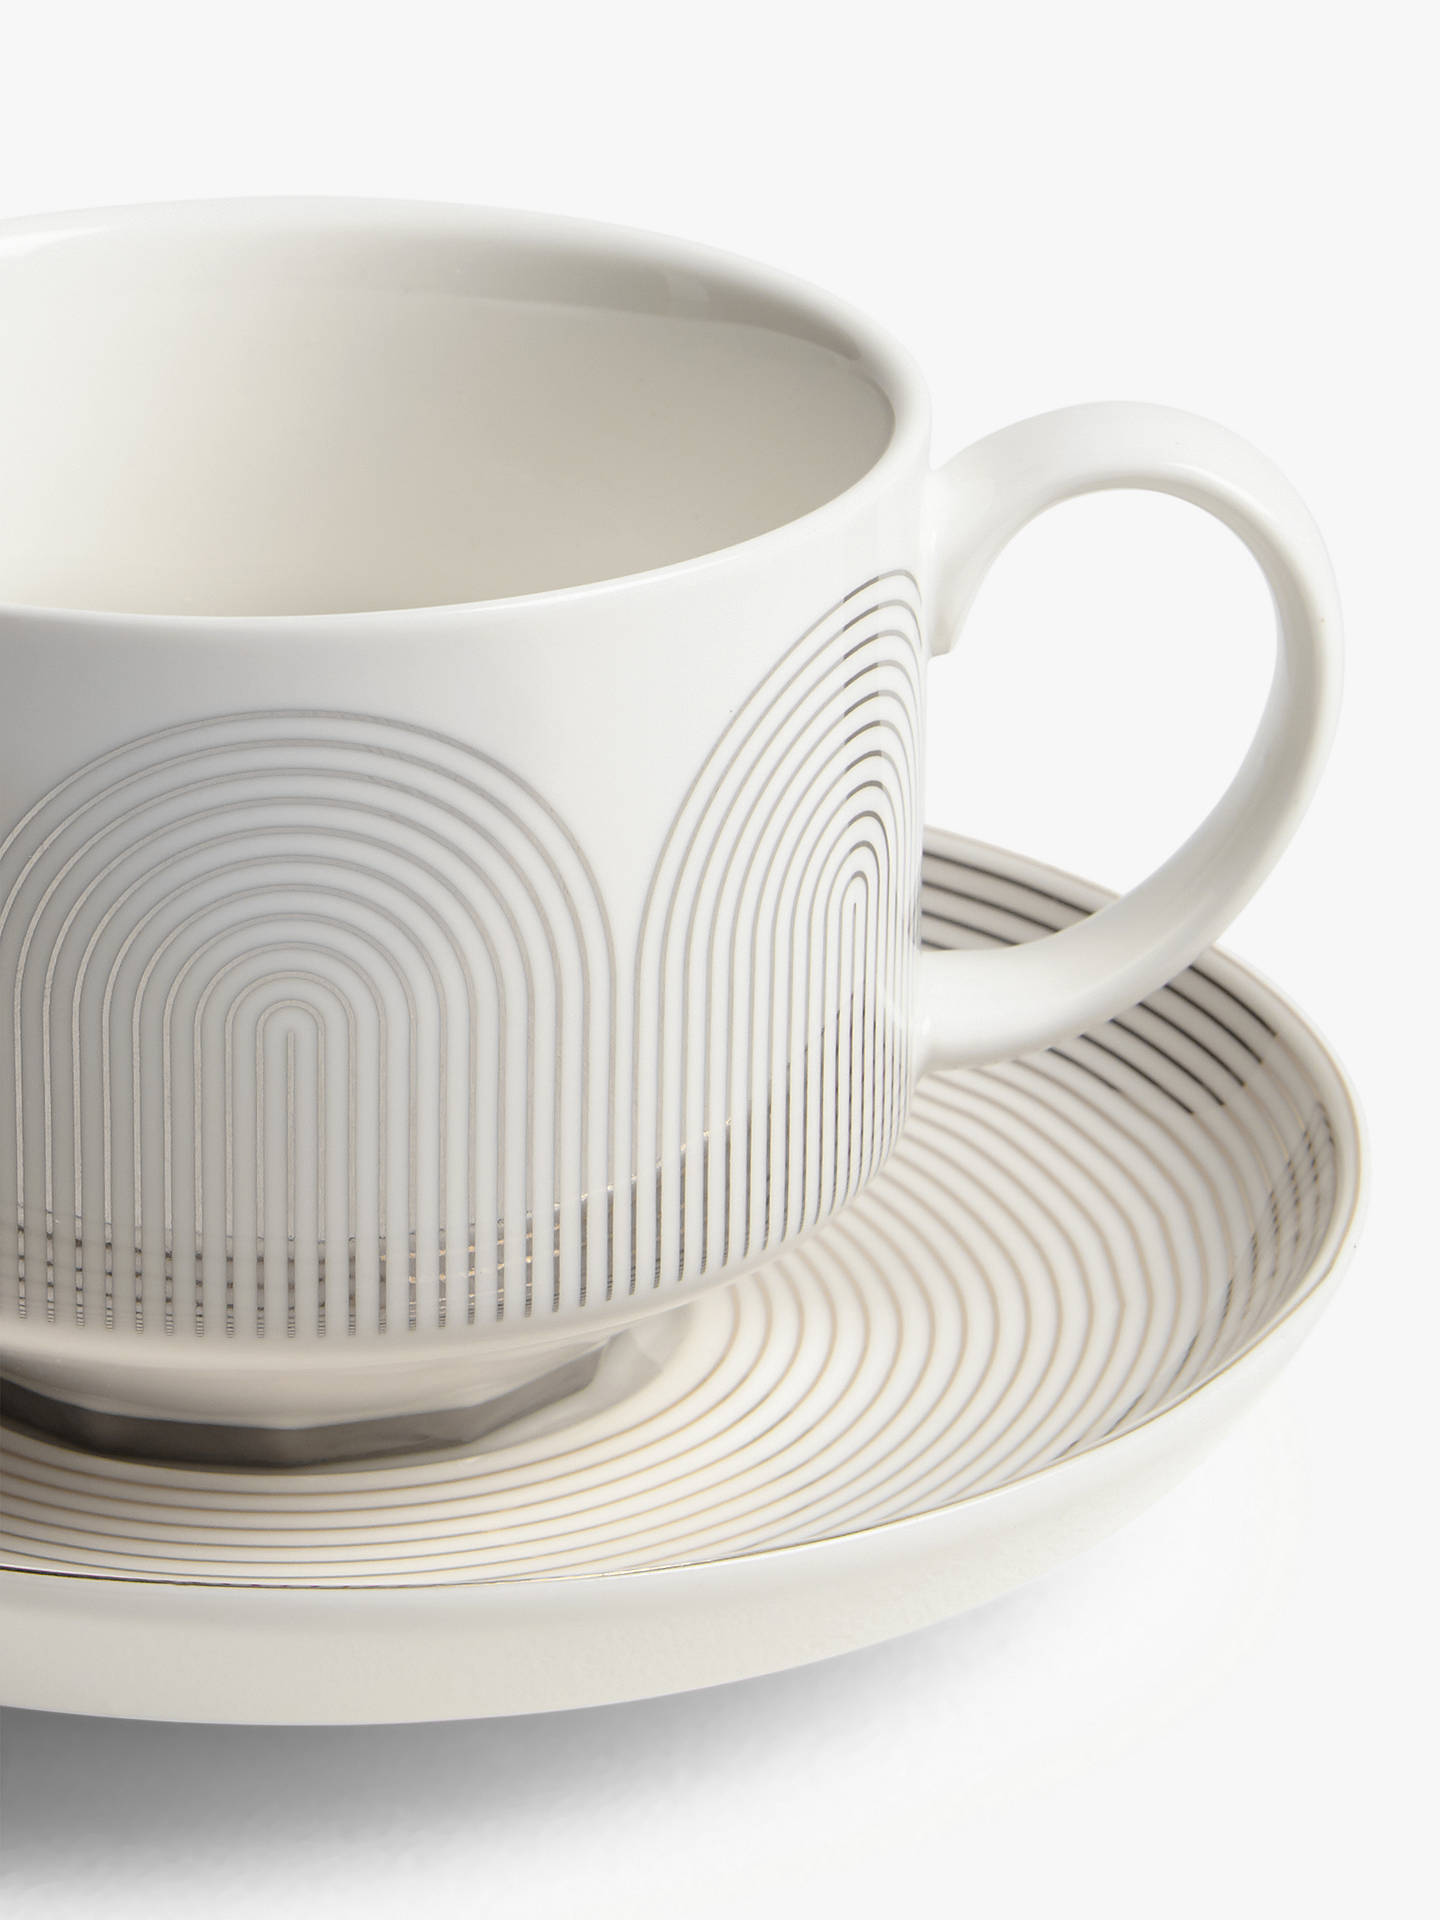 Buy John Lewis & Partners Fine China Cup & Saucer, Set of 2, Gold/White, 275ml Online at johnlewis.com